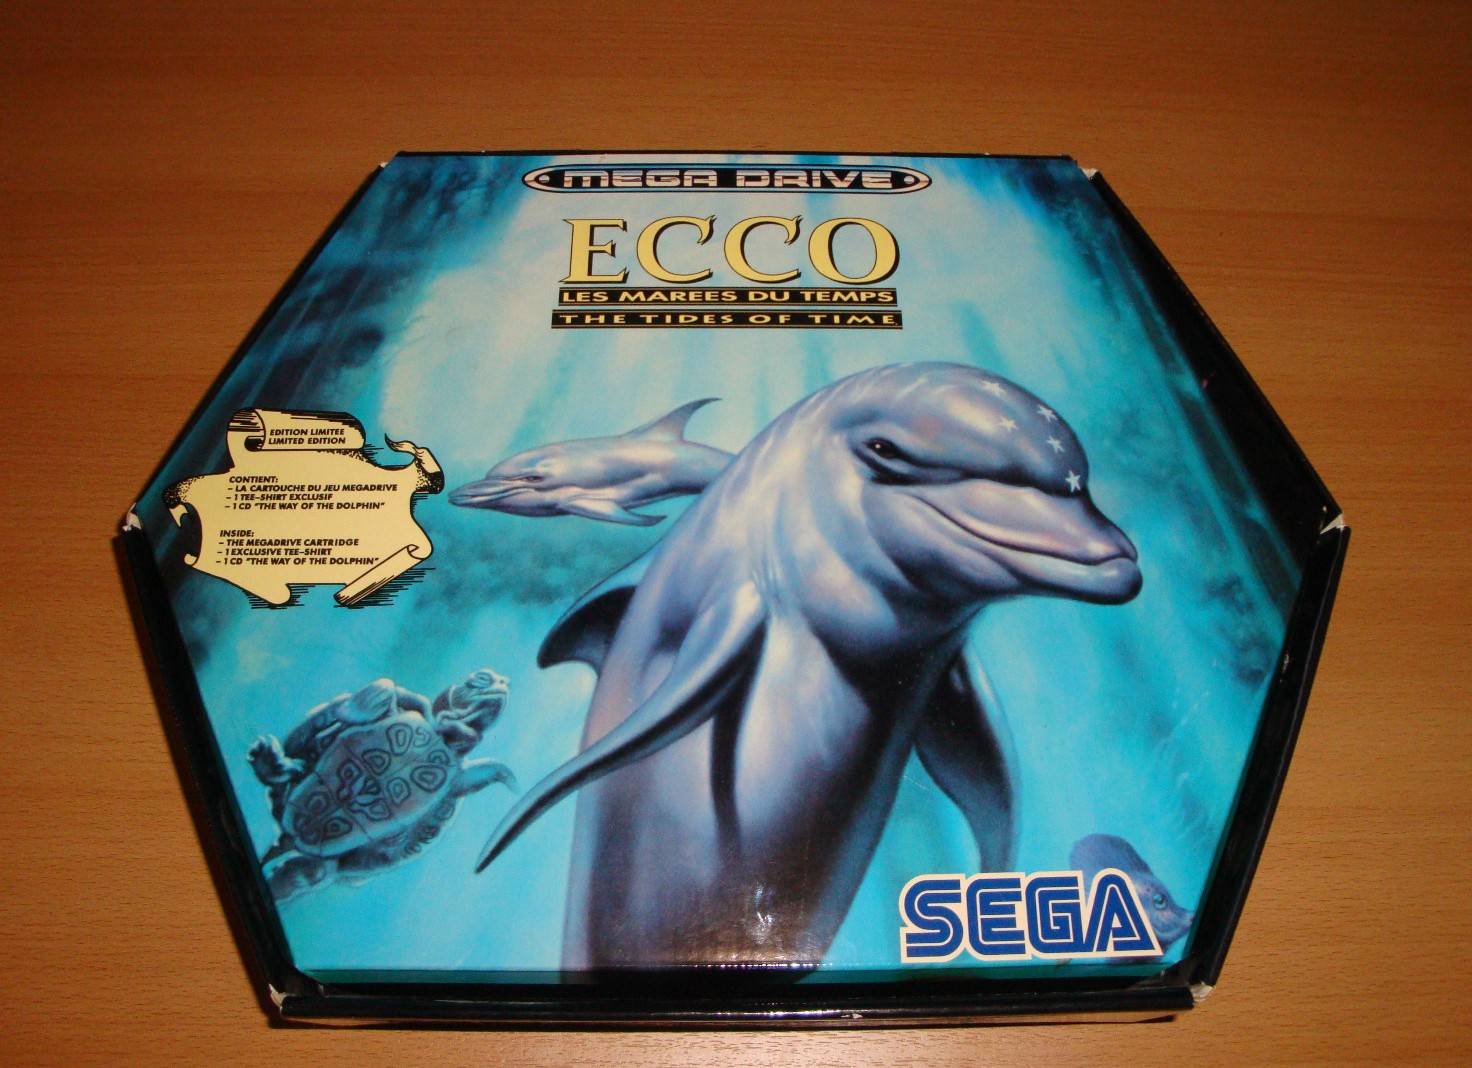 Sega Genesis / Megadrive Ecco The Dolphin Box Set (Photos & Info)